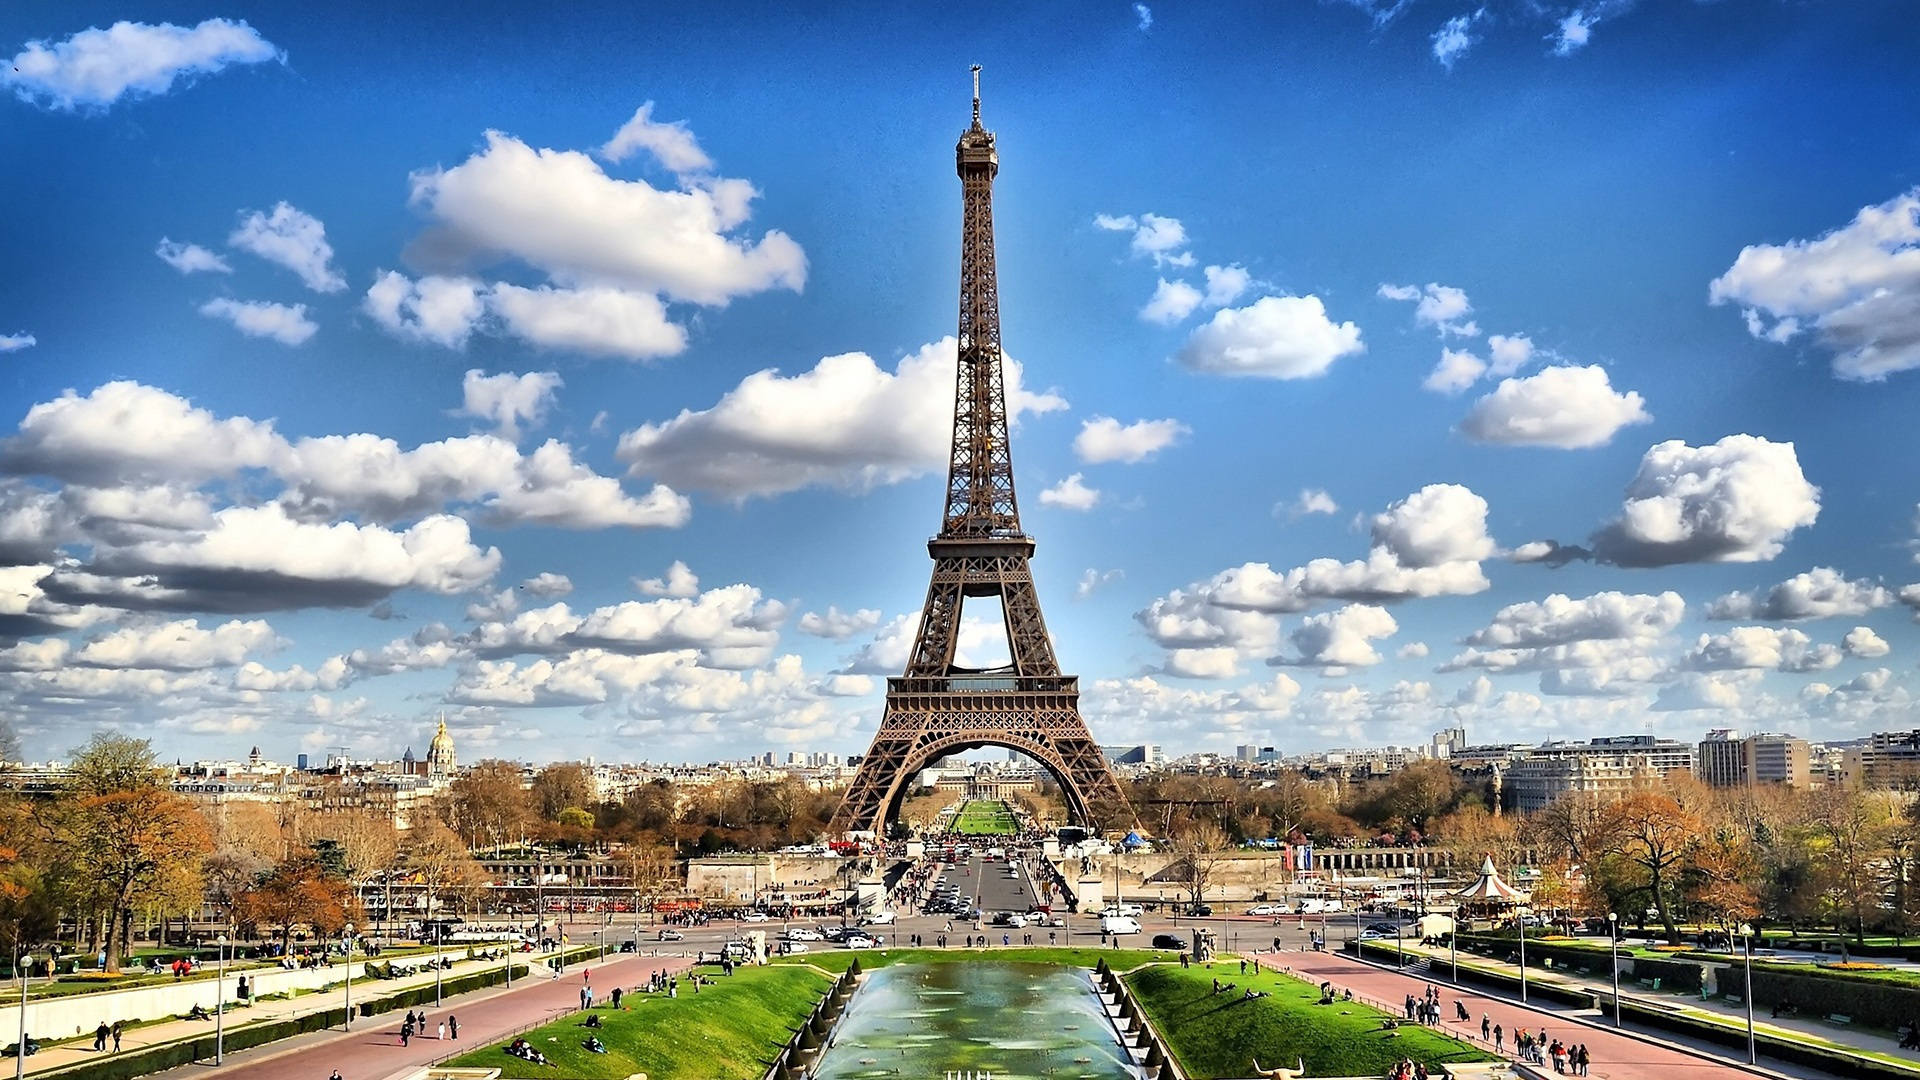 Eiffel tower on background of clouds in Paris France wallpapers and 1920x1080